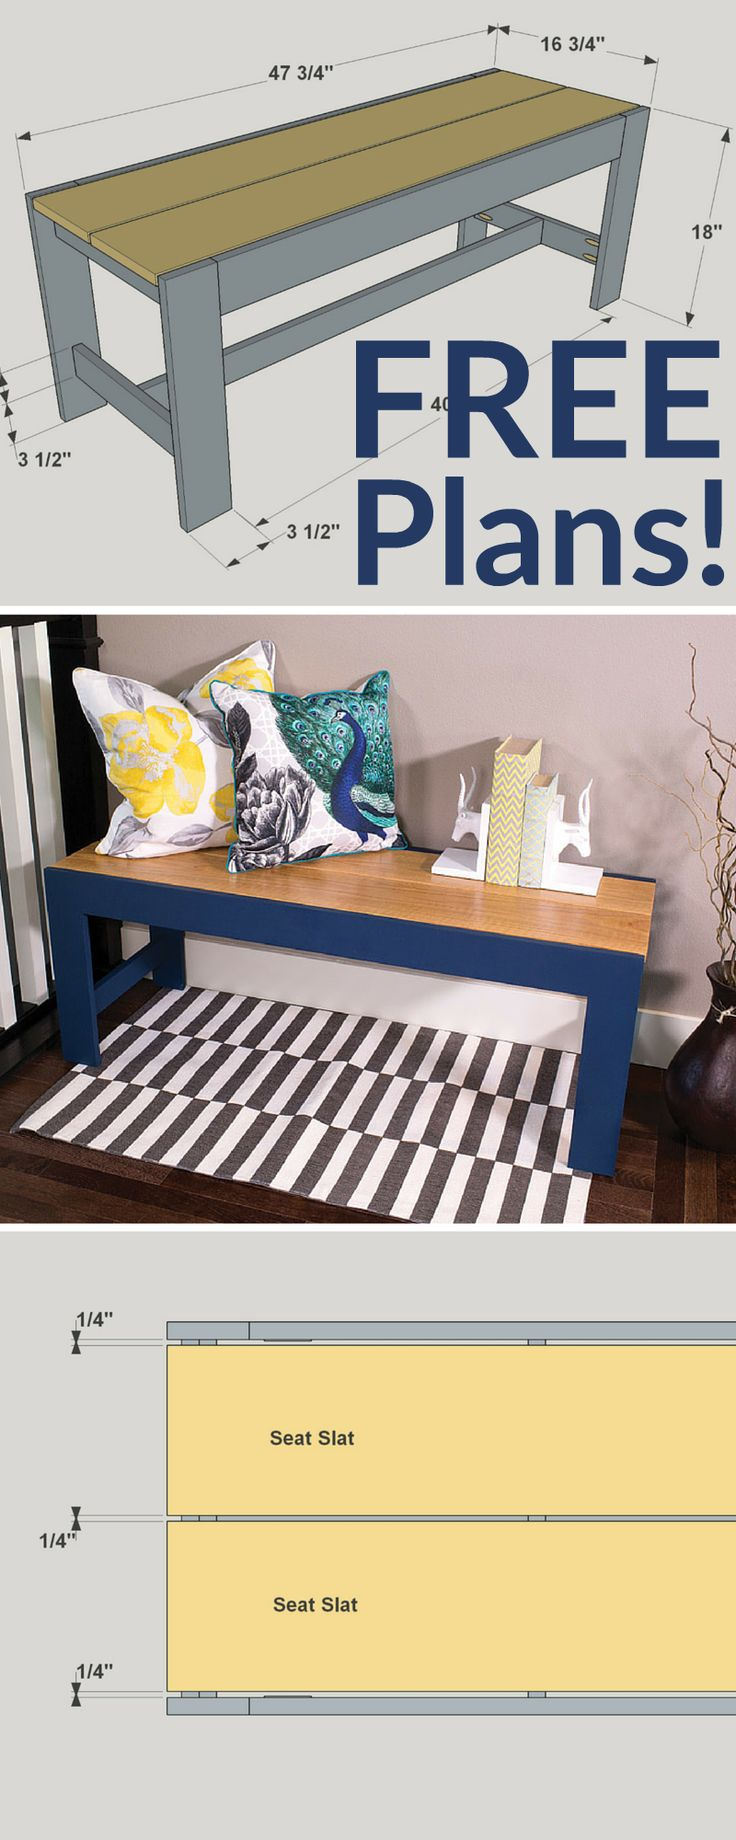 How to build a DIY Elegant Bench | Free printable project plans on buildsomething.com | Simple lines, bold colors, and easy construction make this bench a perfect project. Whether you use it in an entryway, in a hallway, or even put it to work for another purpose, it will add style and function that you'll enjoy for years.